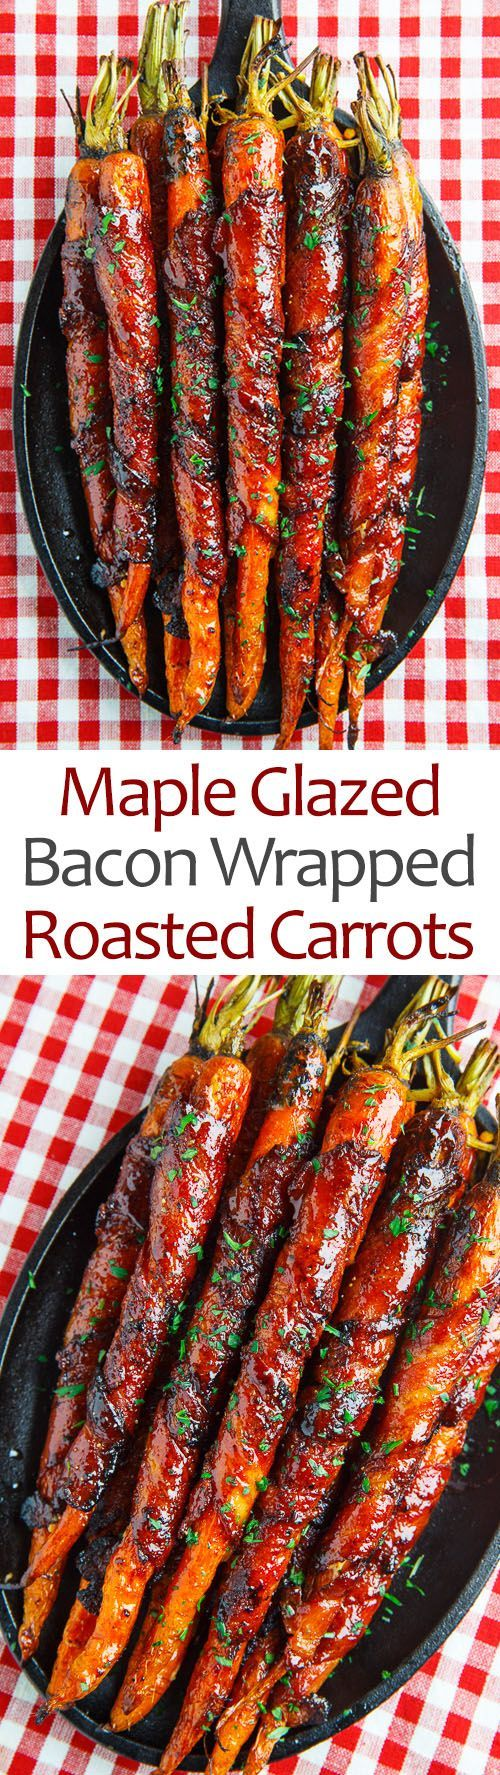 Maple Glazed Bacon Wrapped Roasted Carrots